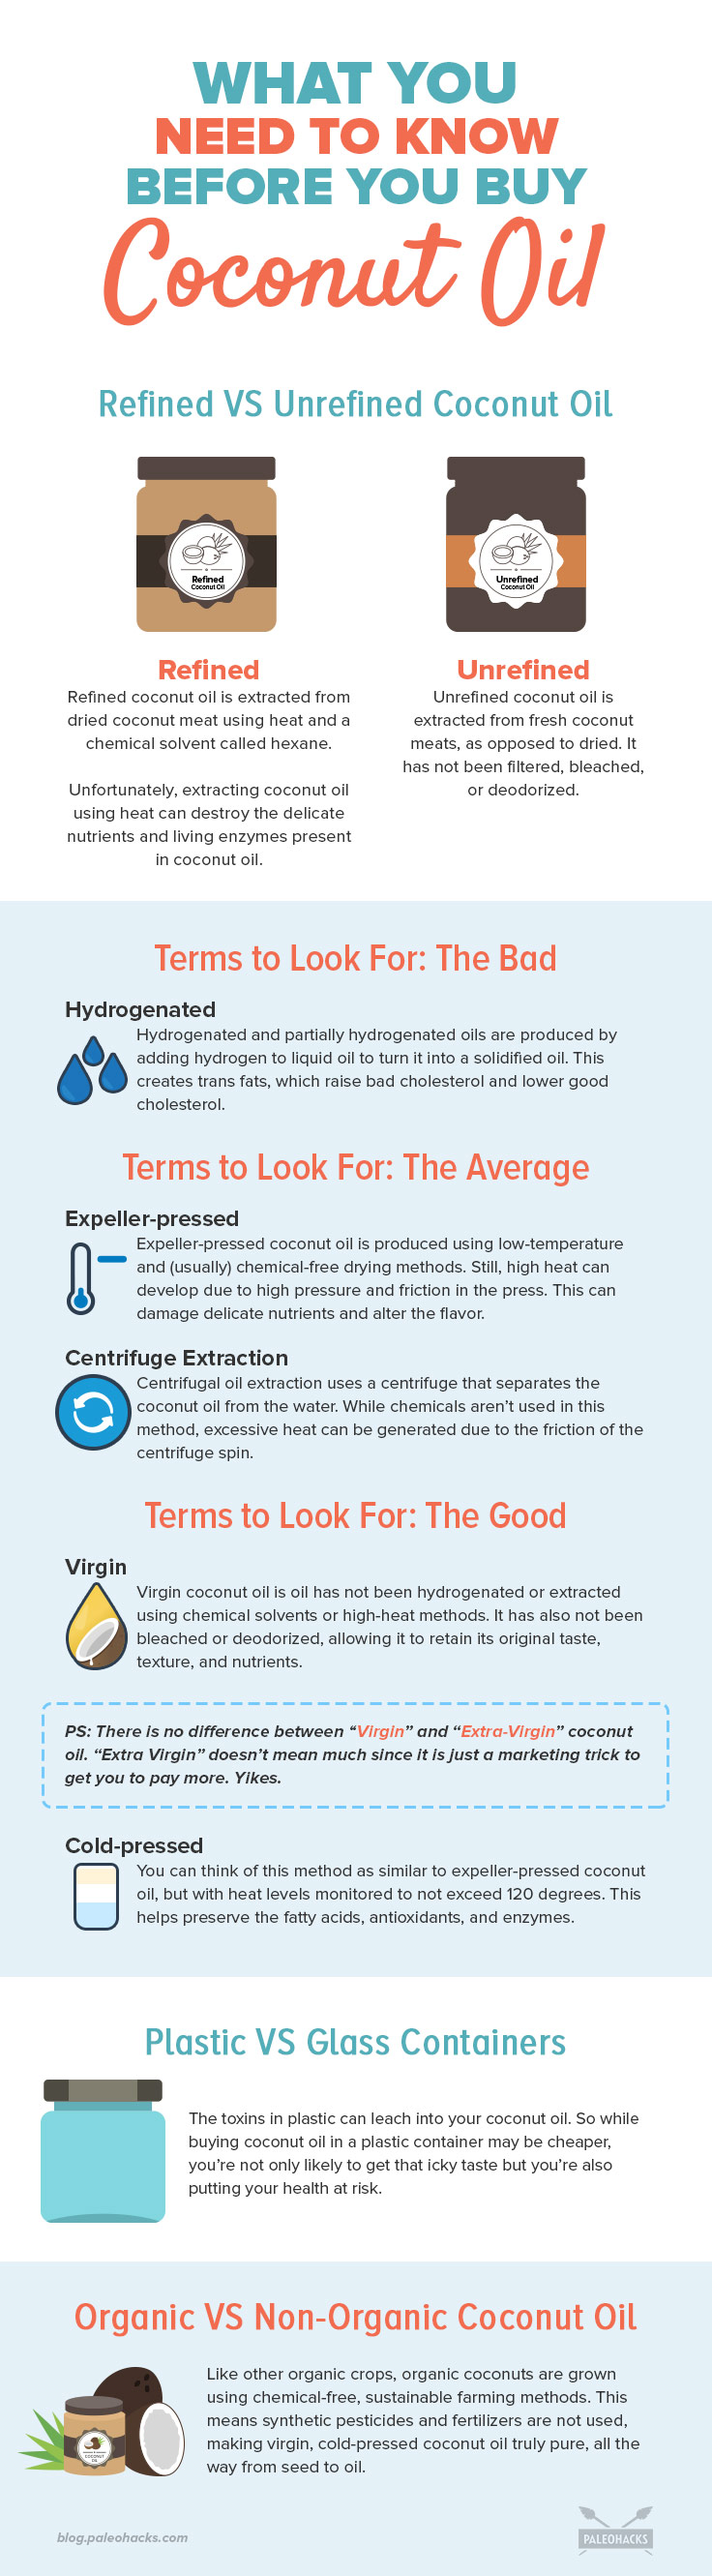 What-You-Need-to-Know-Before-You-Buy-Coconut-Oil-infog2.jpg